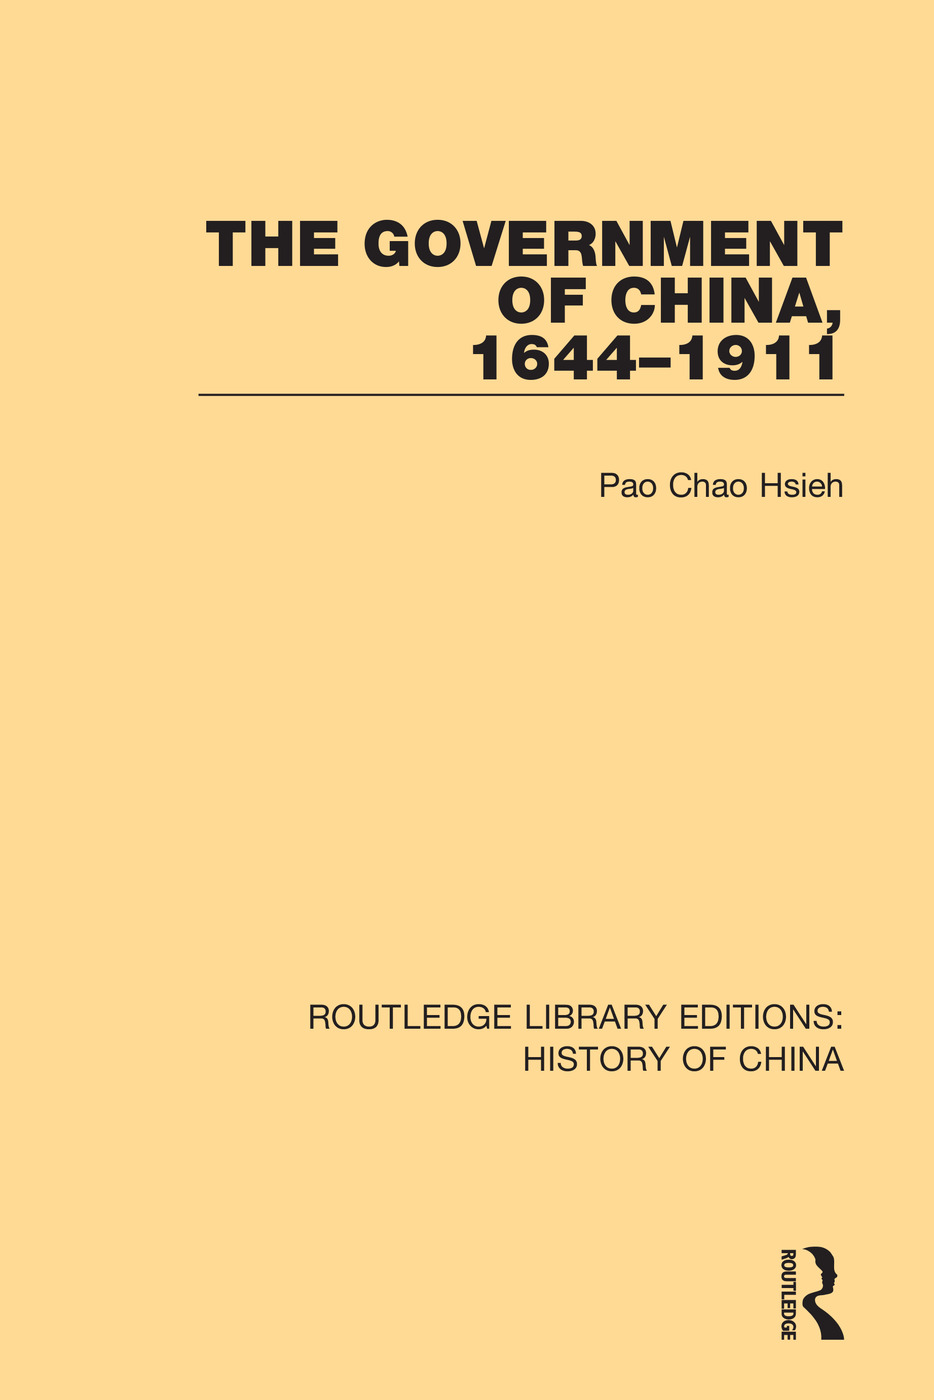 The Government of China, 1644-1911 book cover